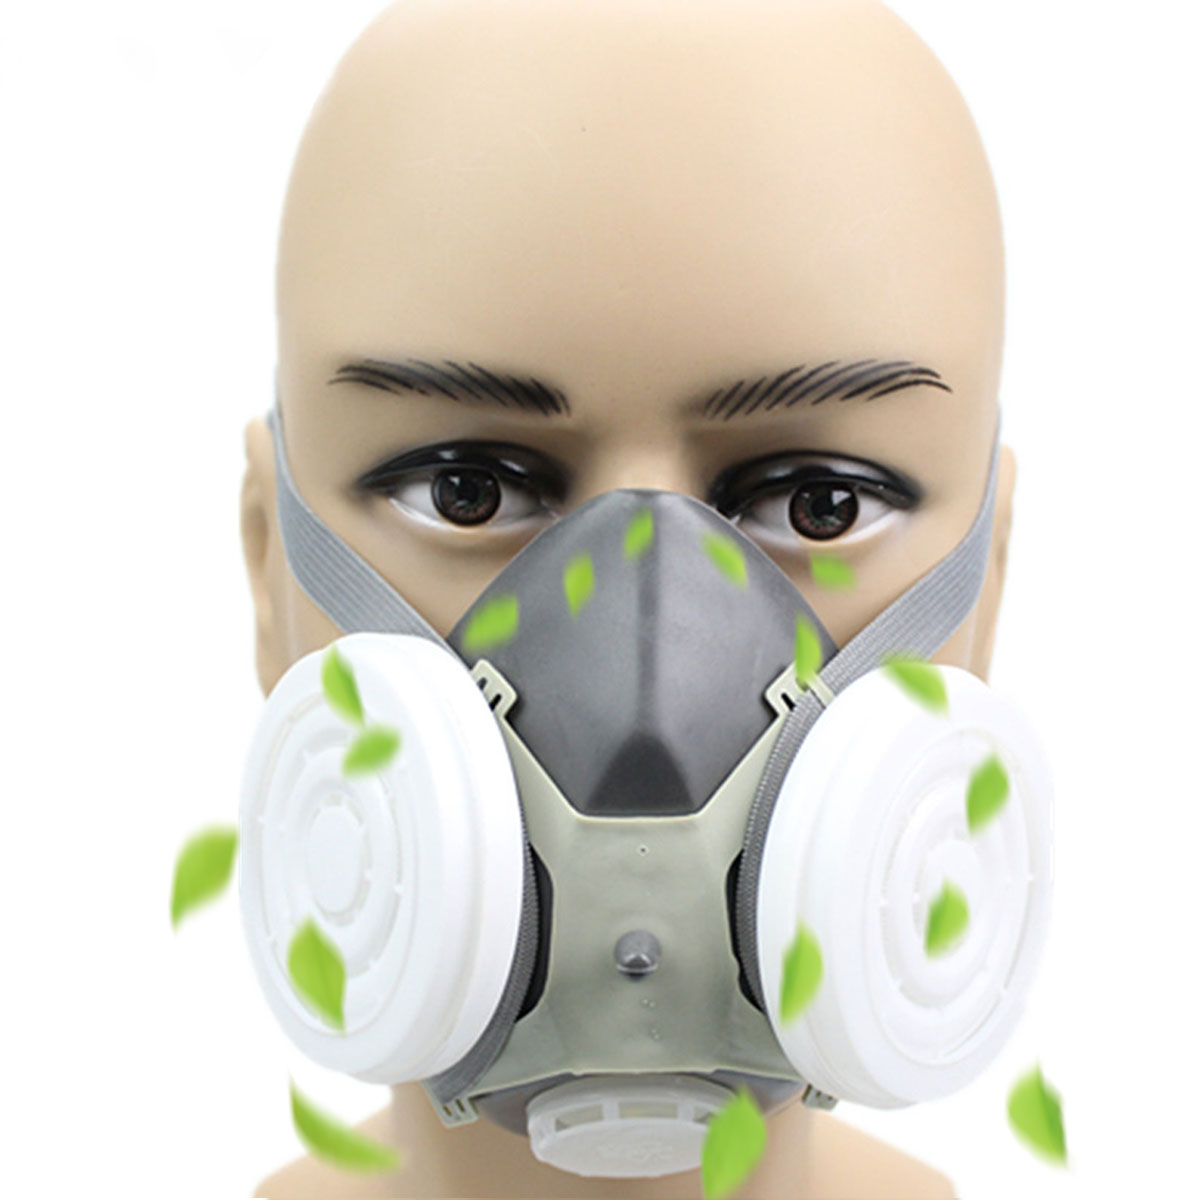 new Industrial Anti Dust Mask Half Gas Mask Welding Smoke Paintting Face Mask Paint Spraying Breathing Safetynew Industrial Anti Dust Mask Half Gas Mask Welding Smoke Paintting Face Mask Paint Spraying Breathing Safety